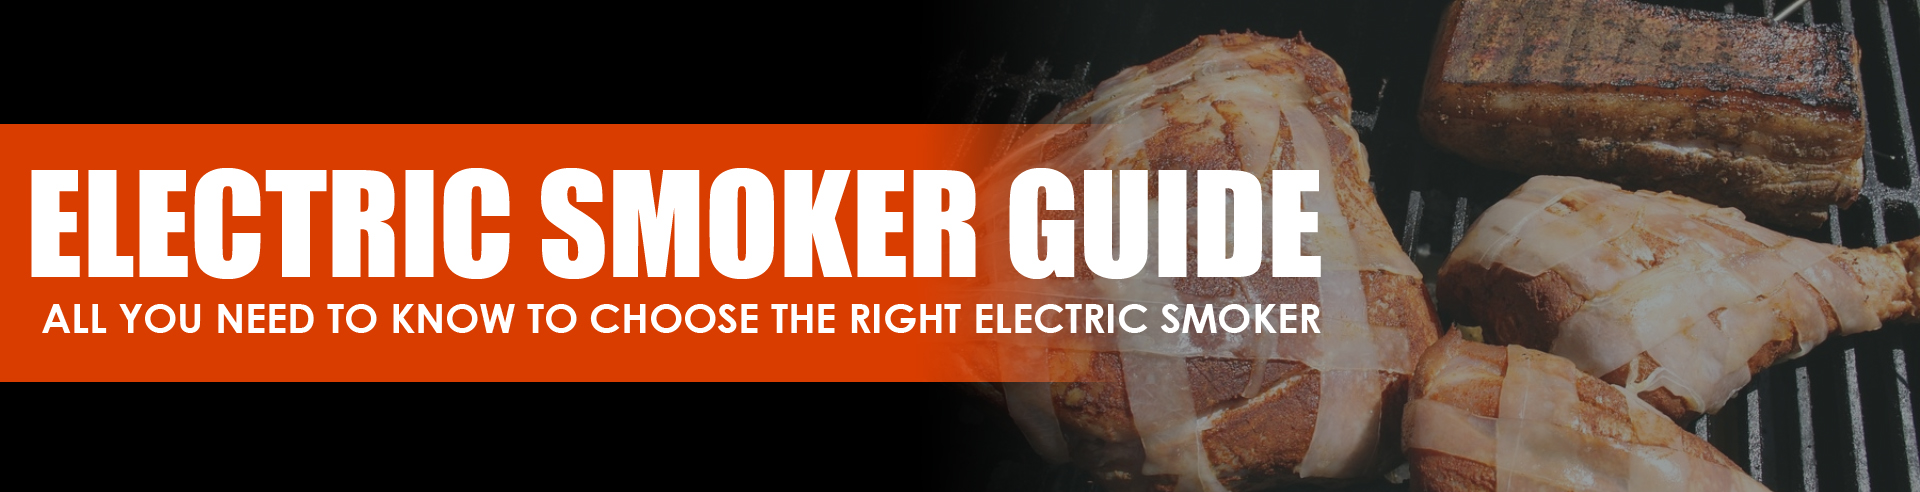 Electric Smoker Guide